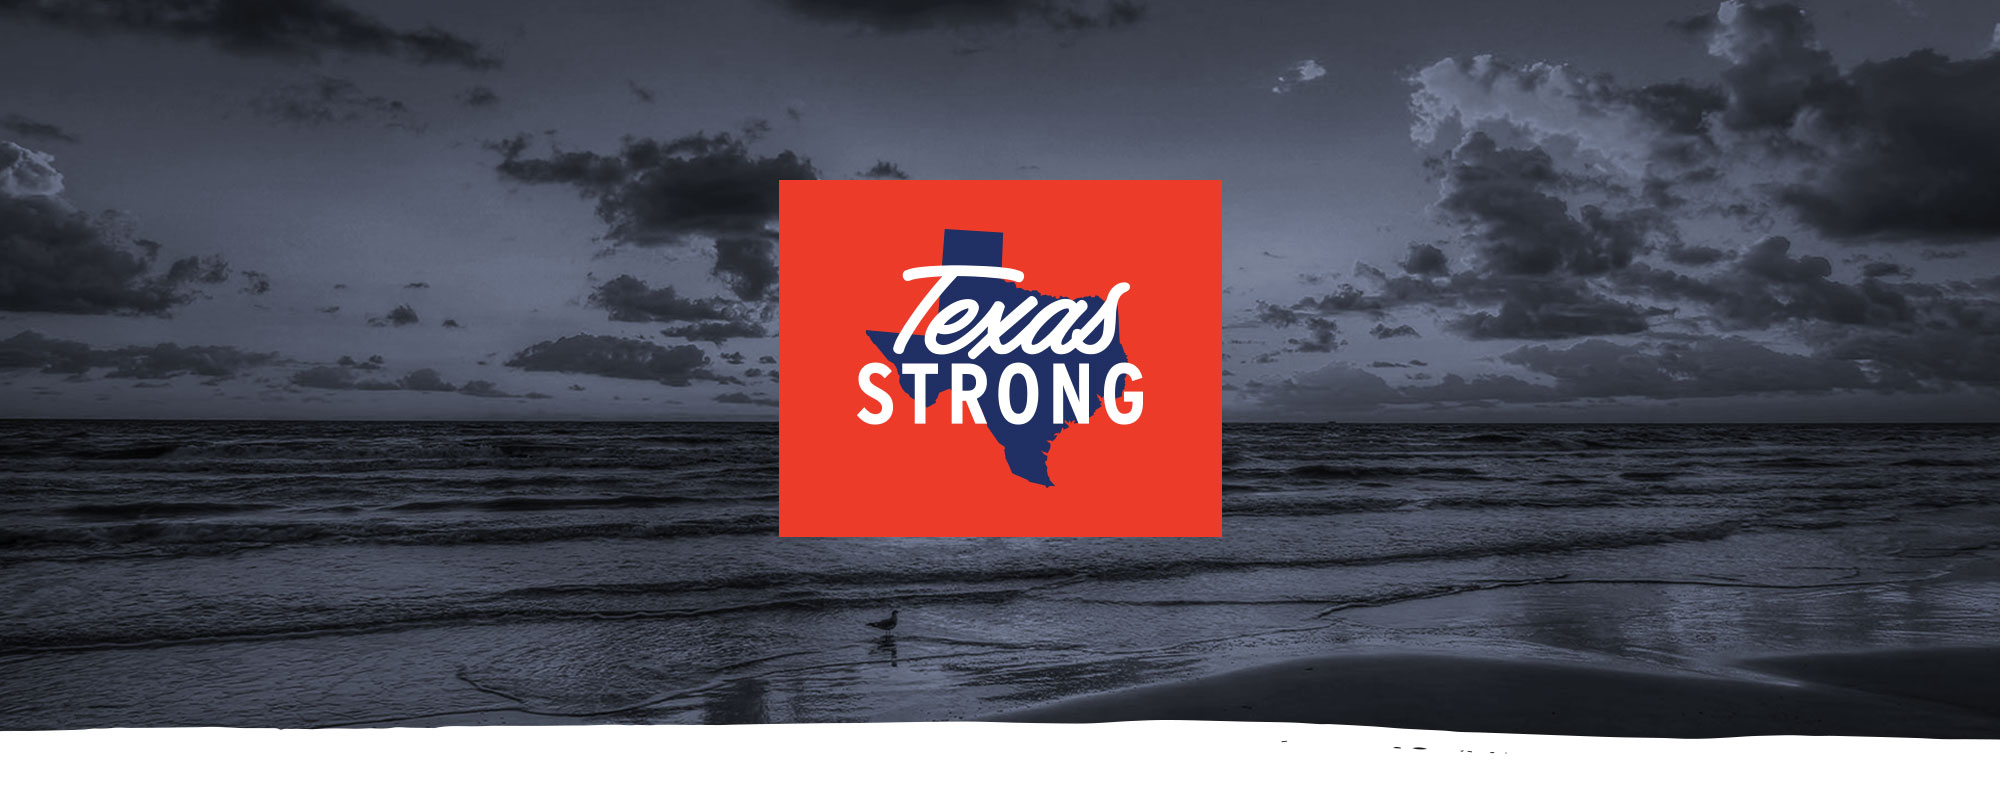 Rudy's Texas Strong Campaign